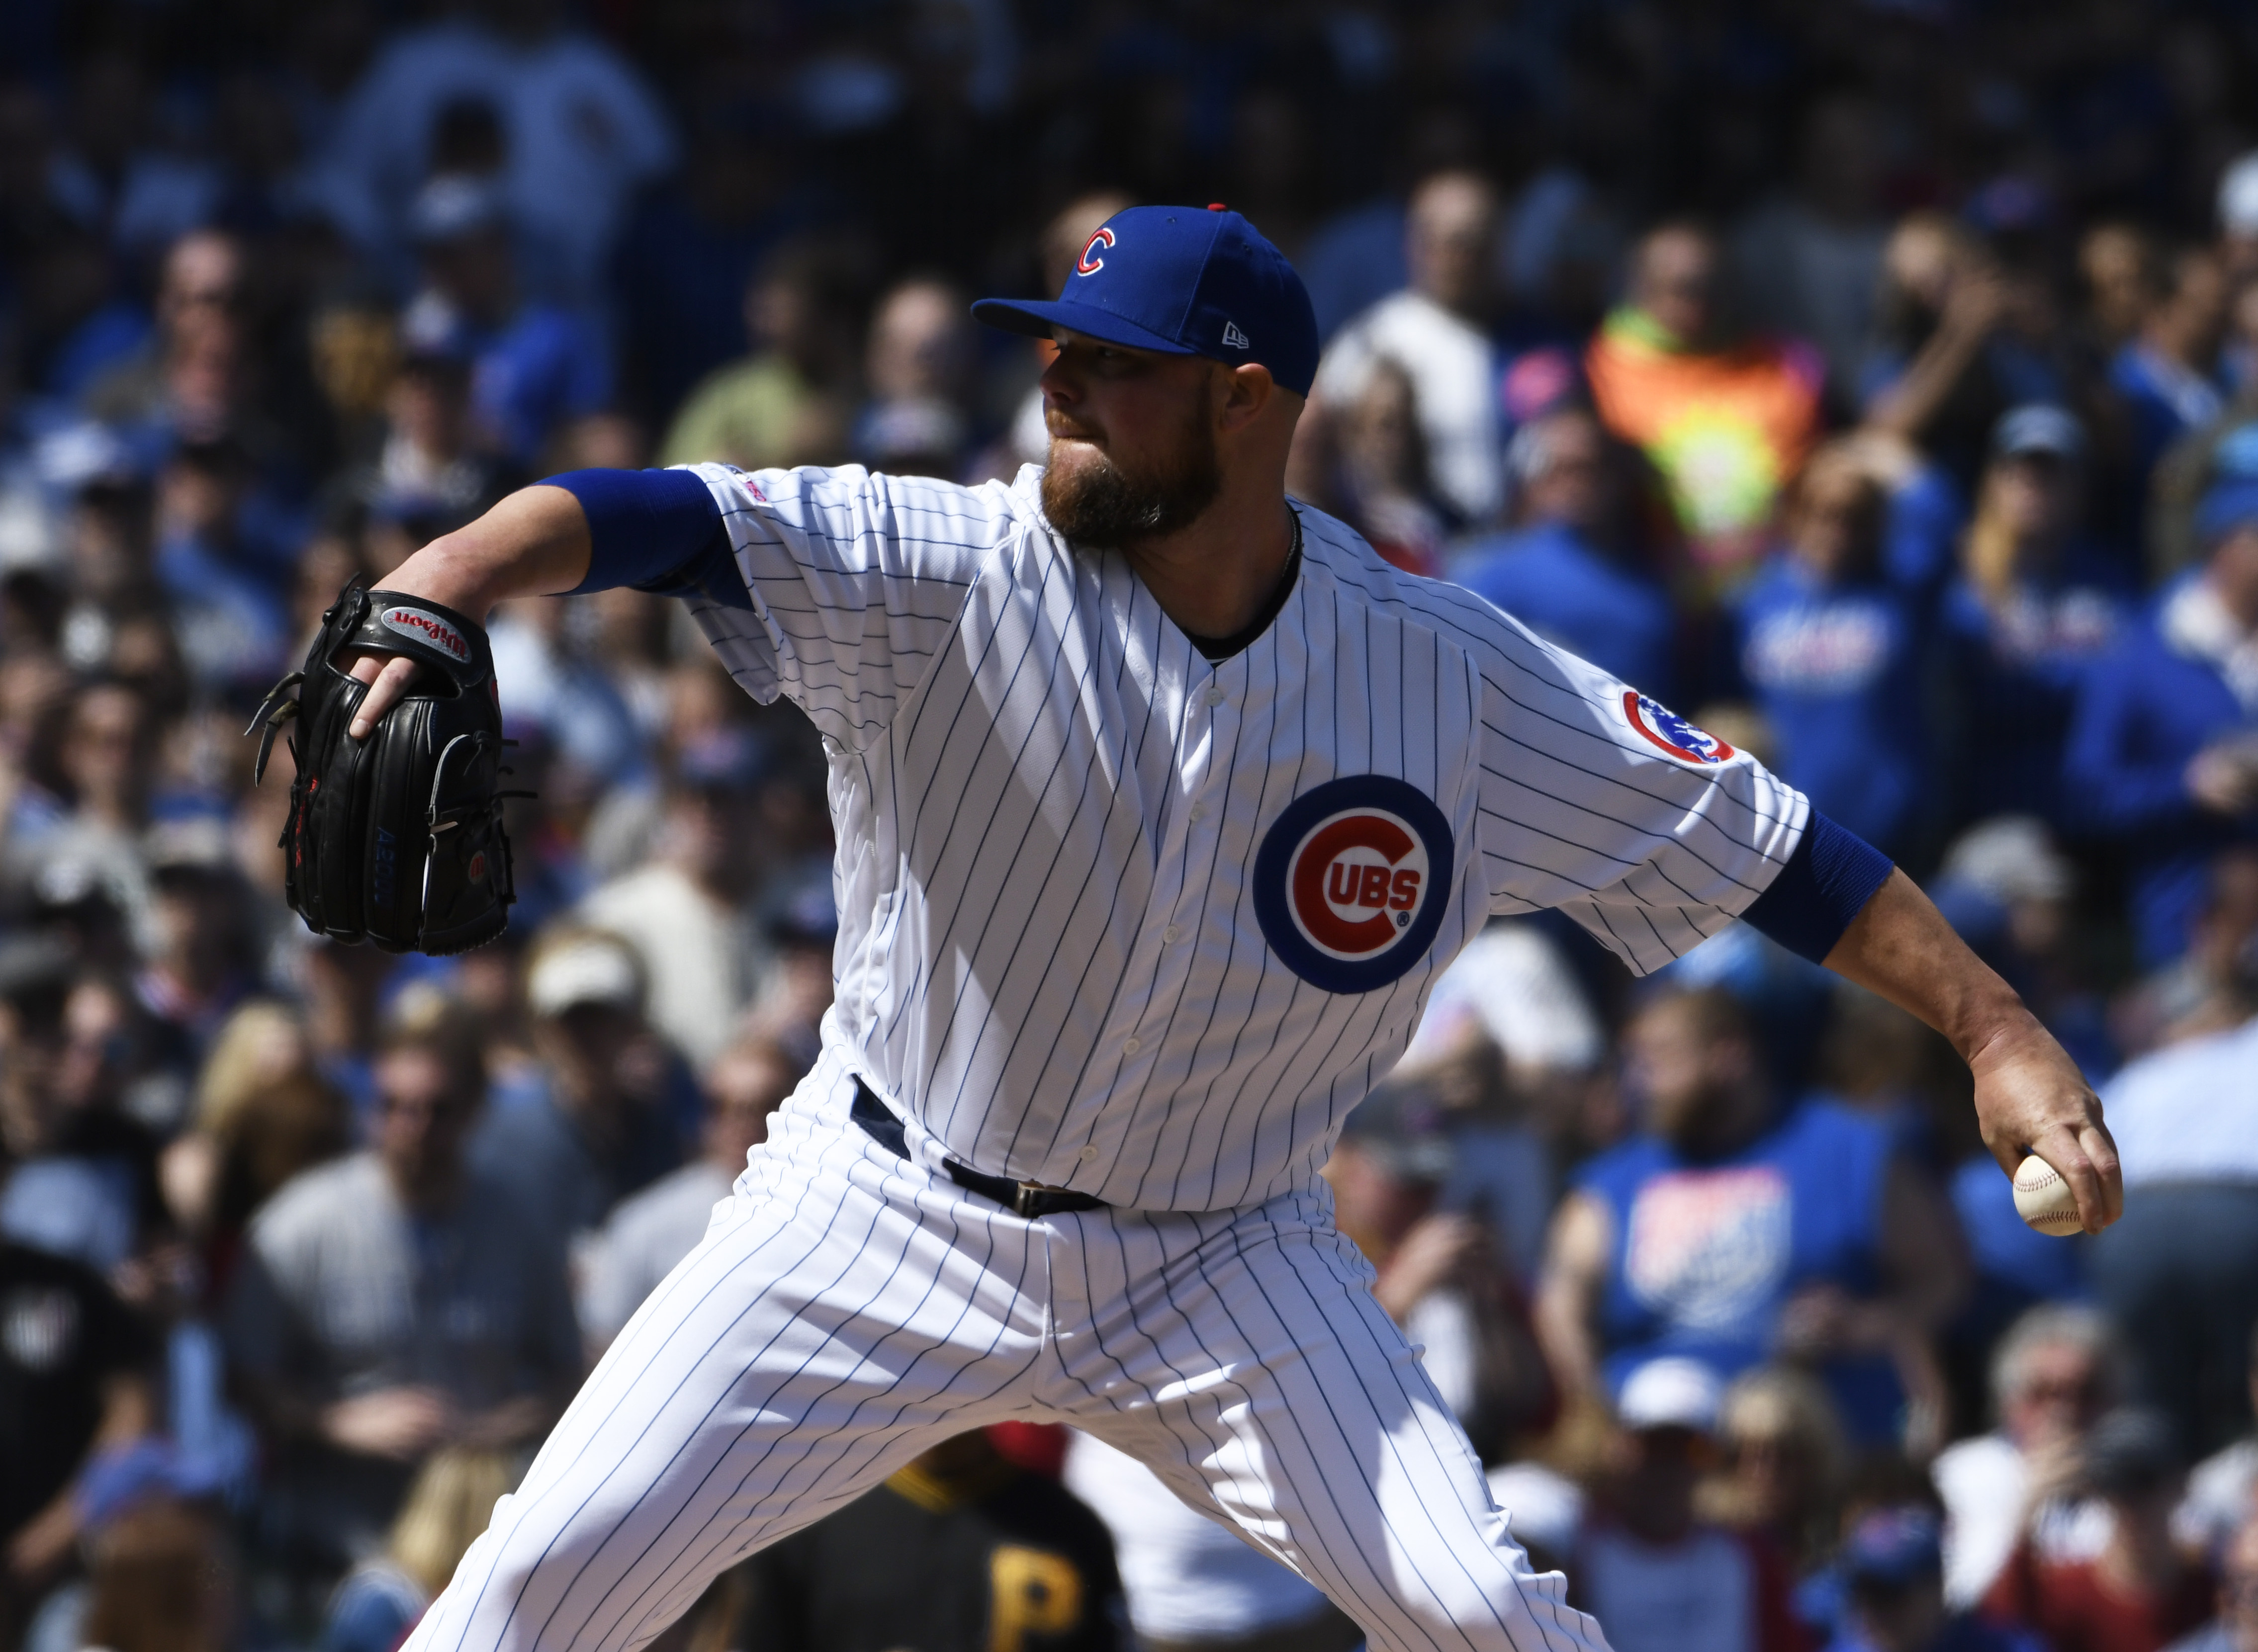 Maddon says Lester likely to miss 1-2 starts for Cubs